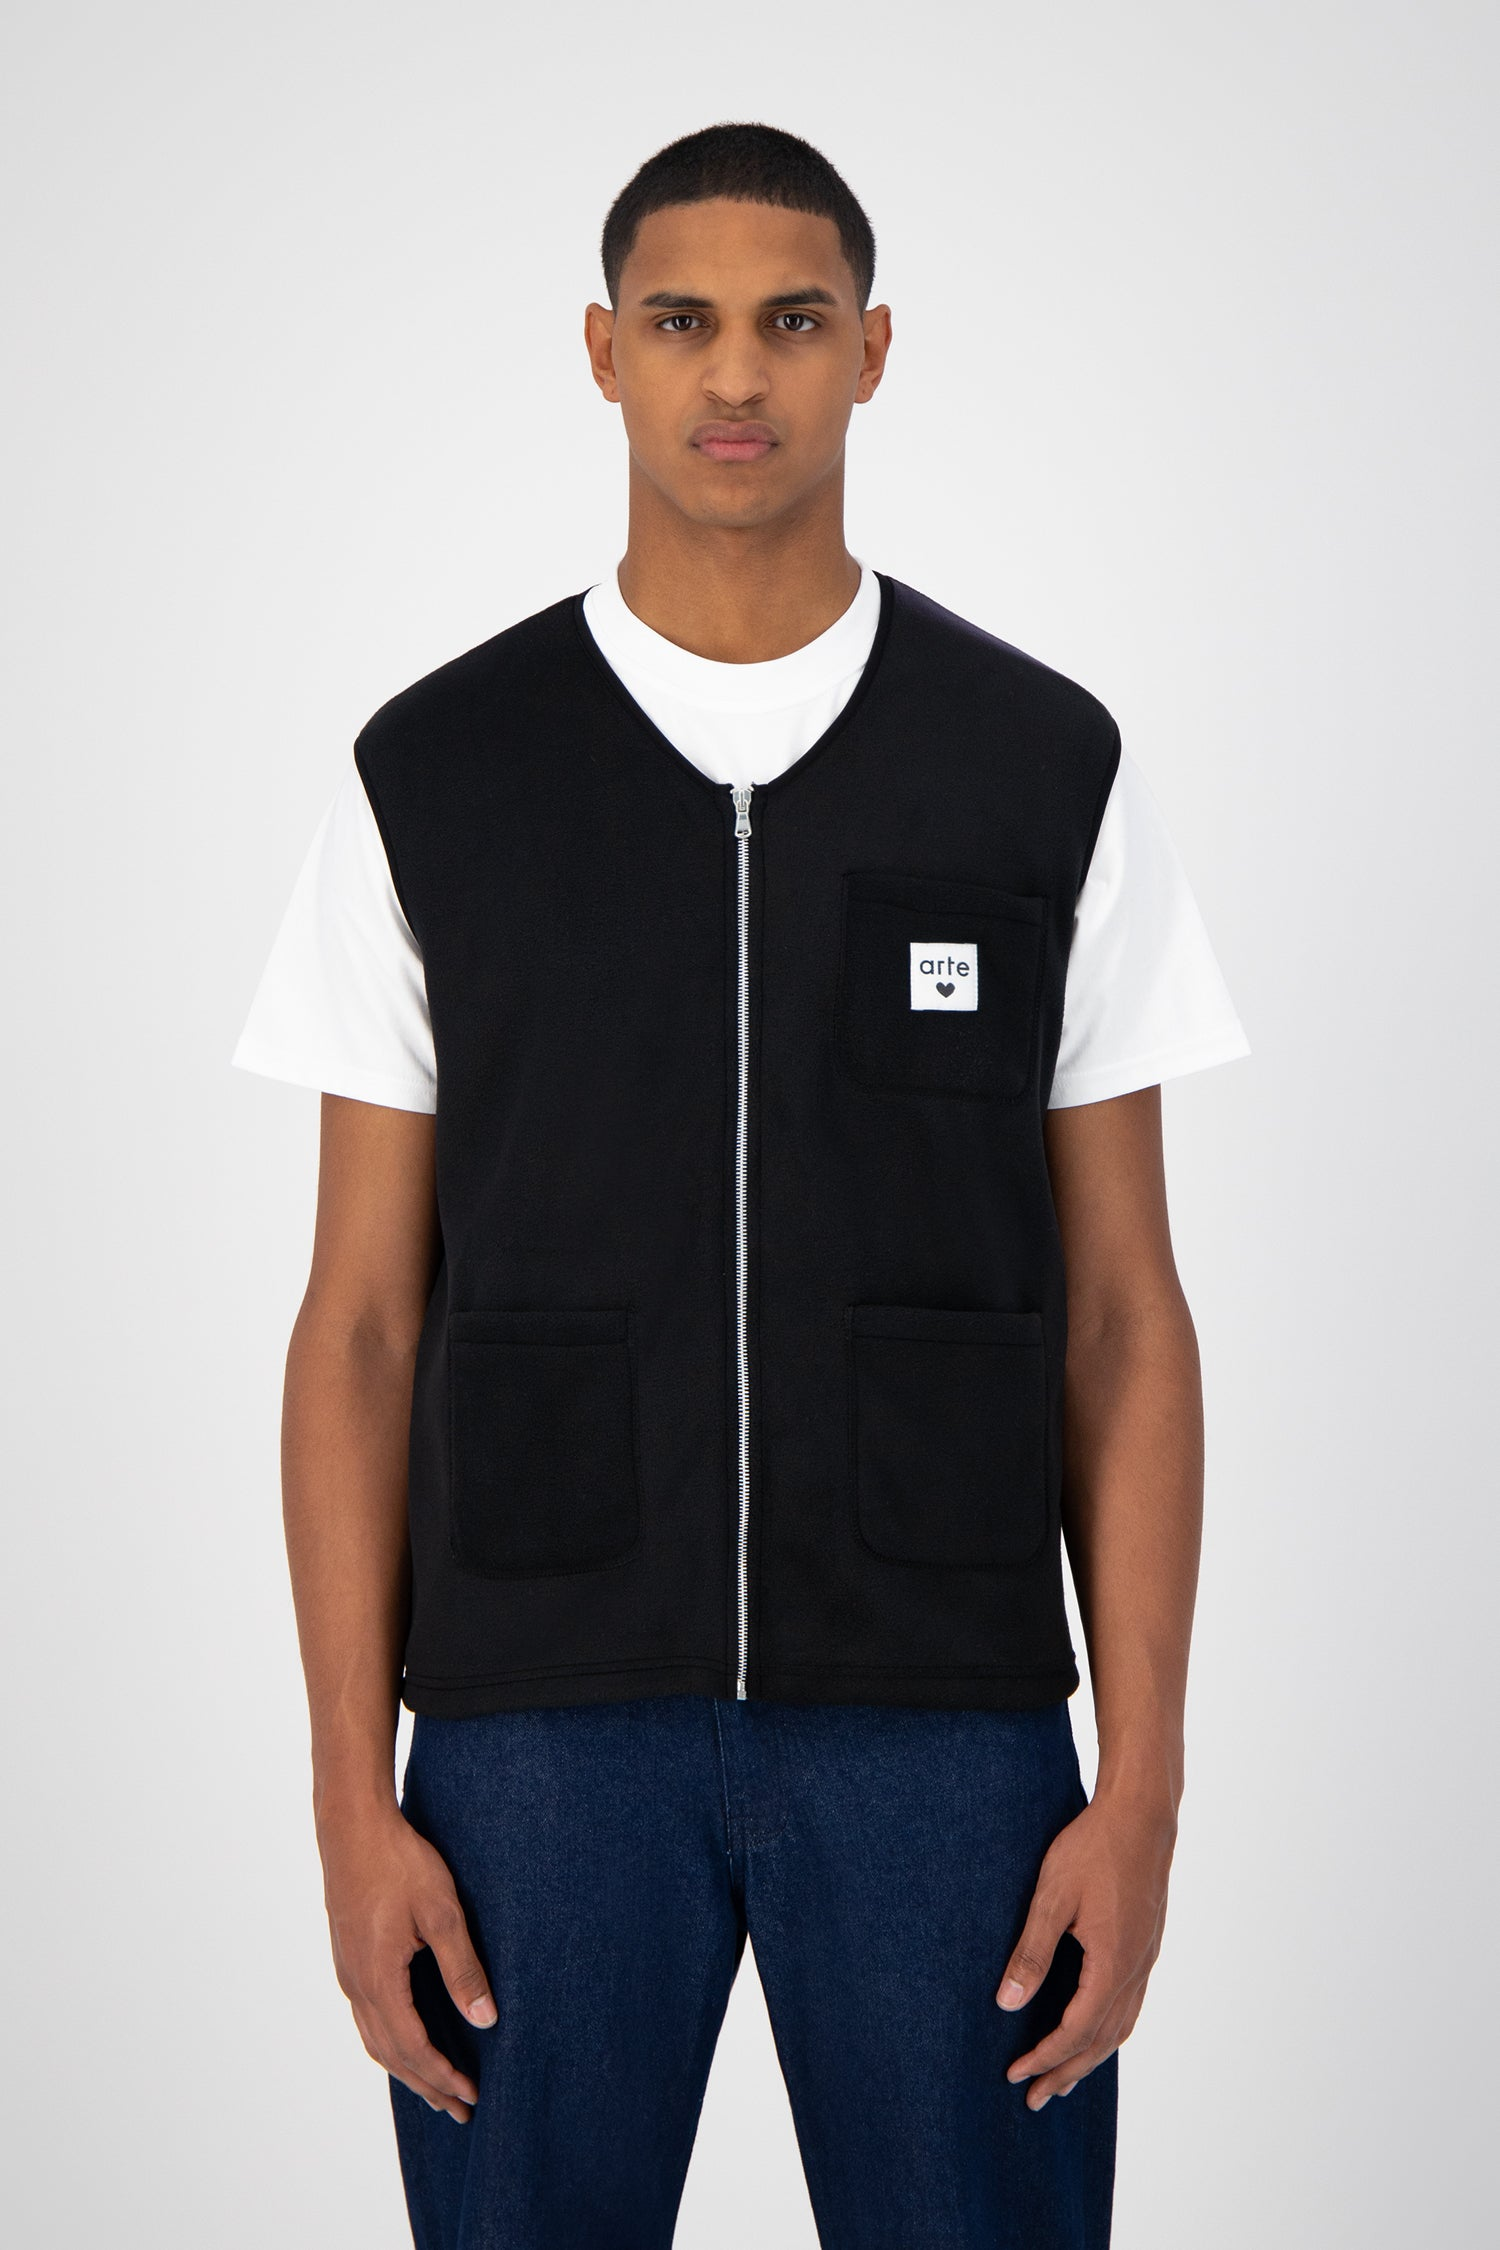 Victor Zipped Vest - Black